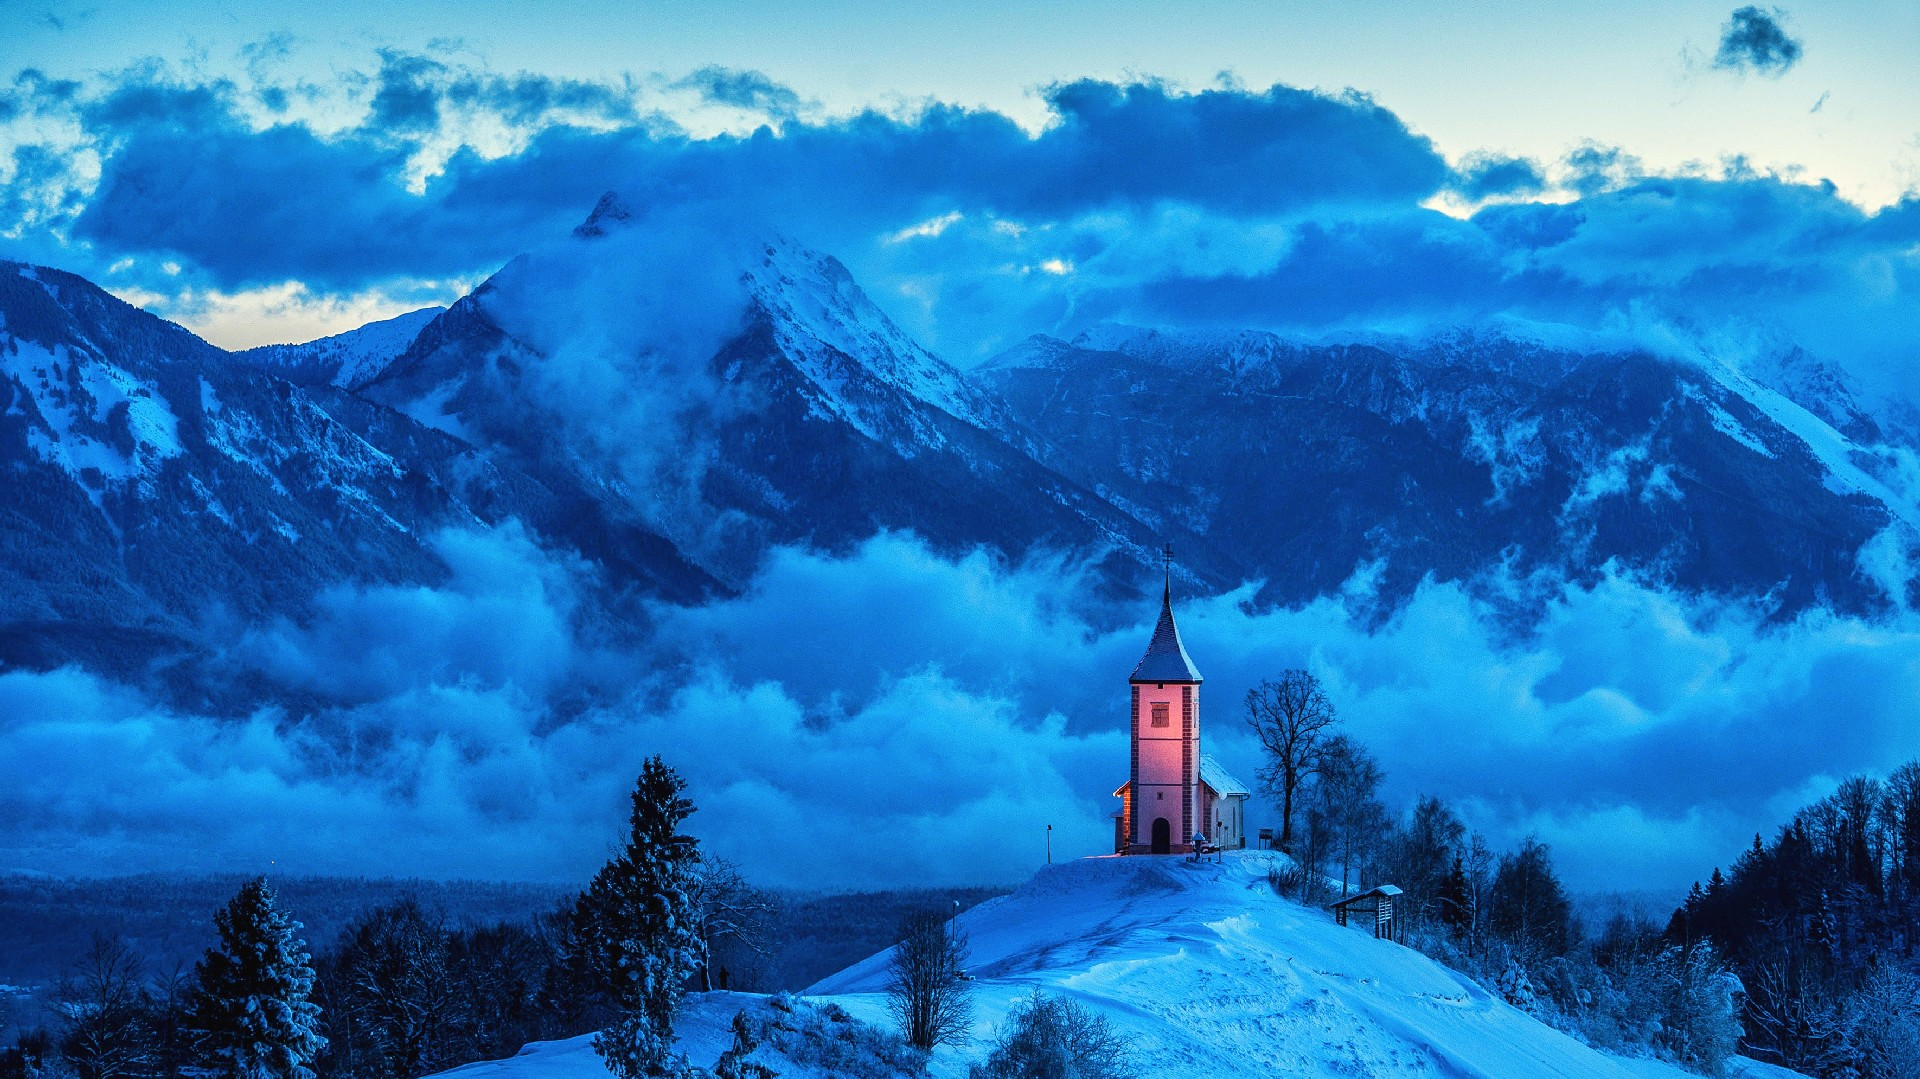 General 1920x1079 landscape mountains snow church mist winter clouds hills Slovenia snowy peak cyan blue